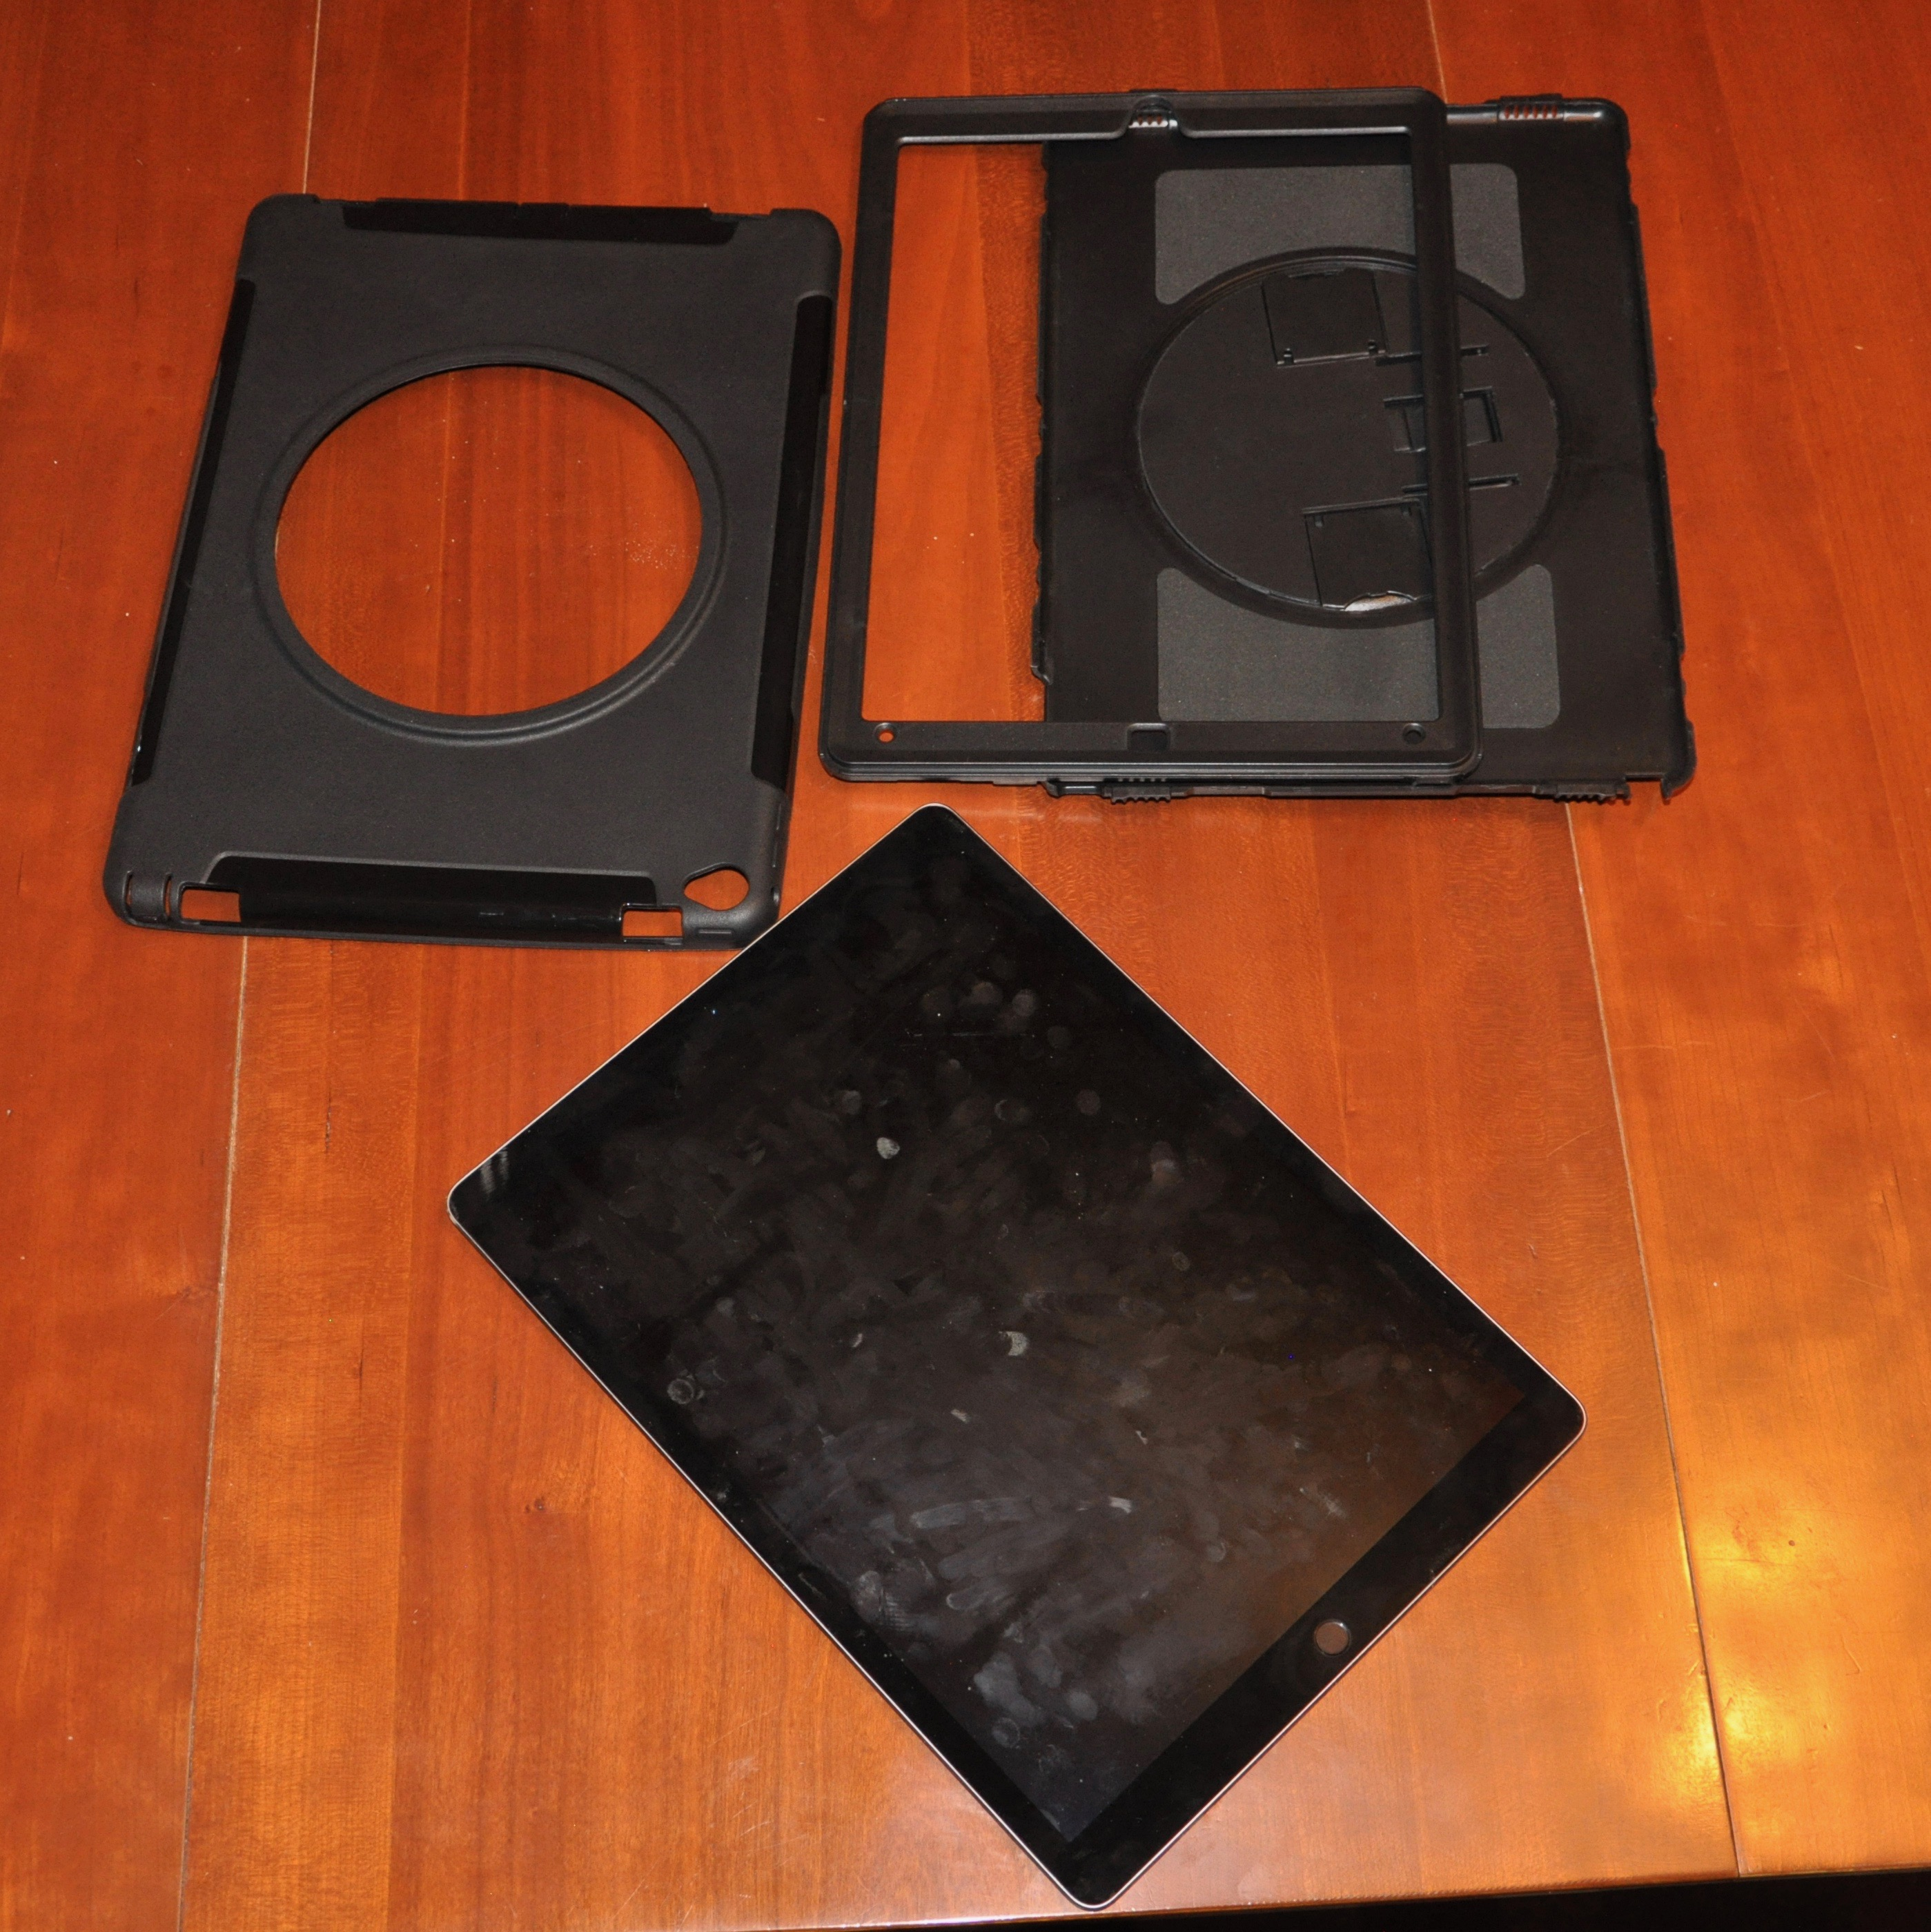 Armor X Ipad Pro Cover Review The Gadgeteer